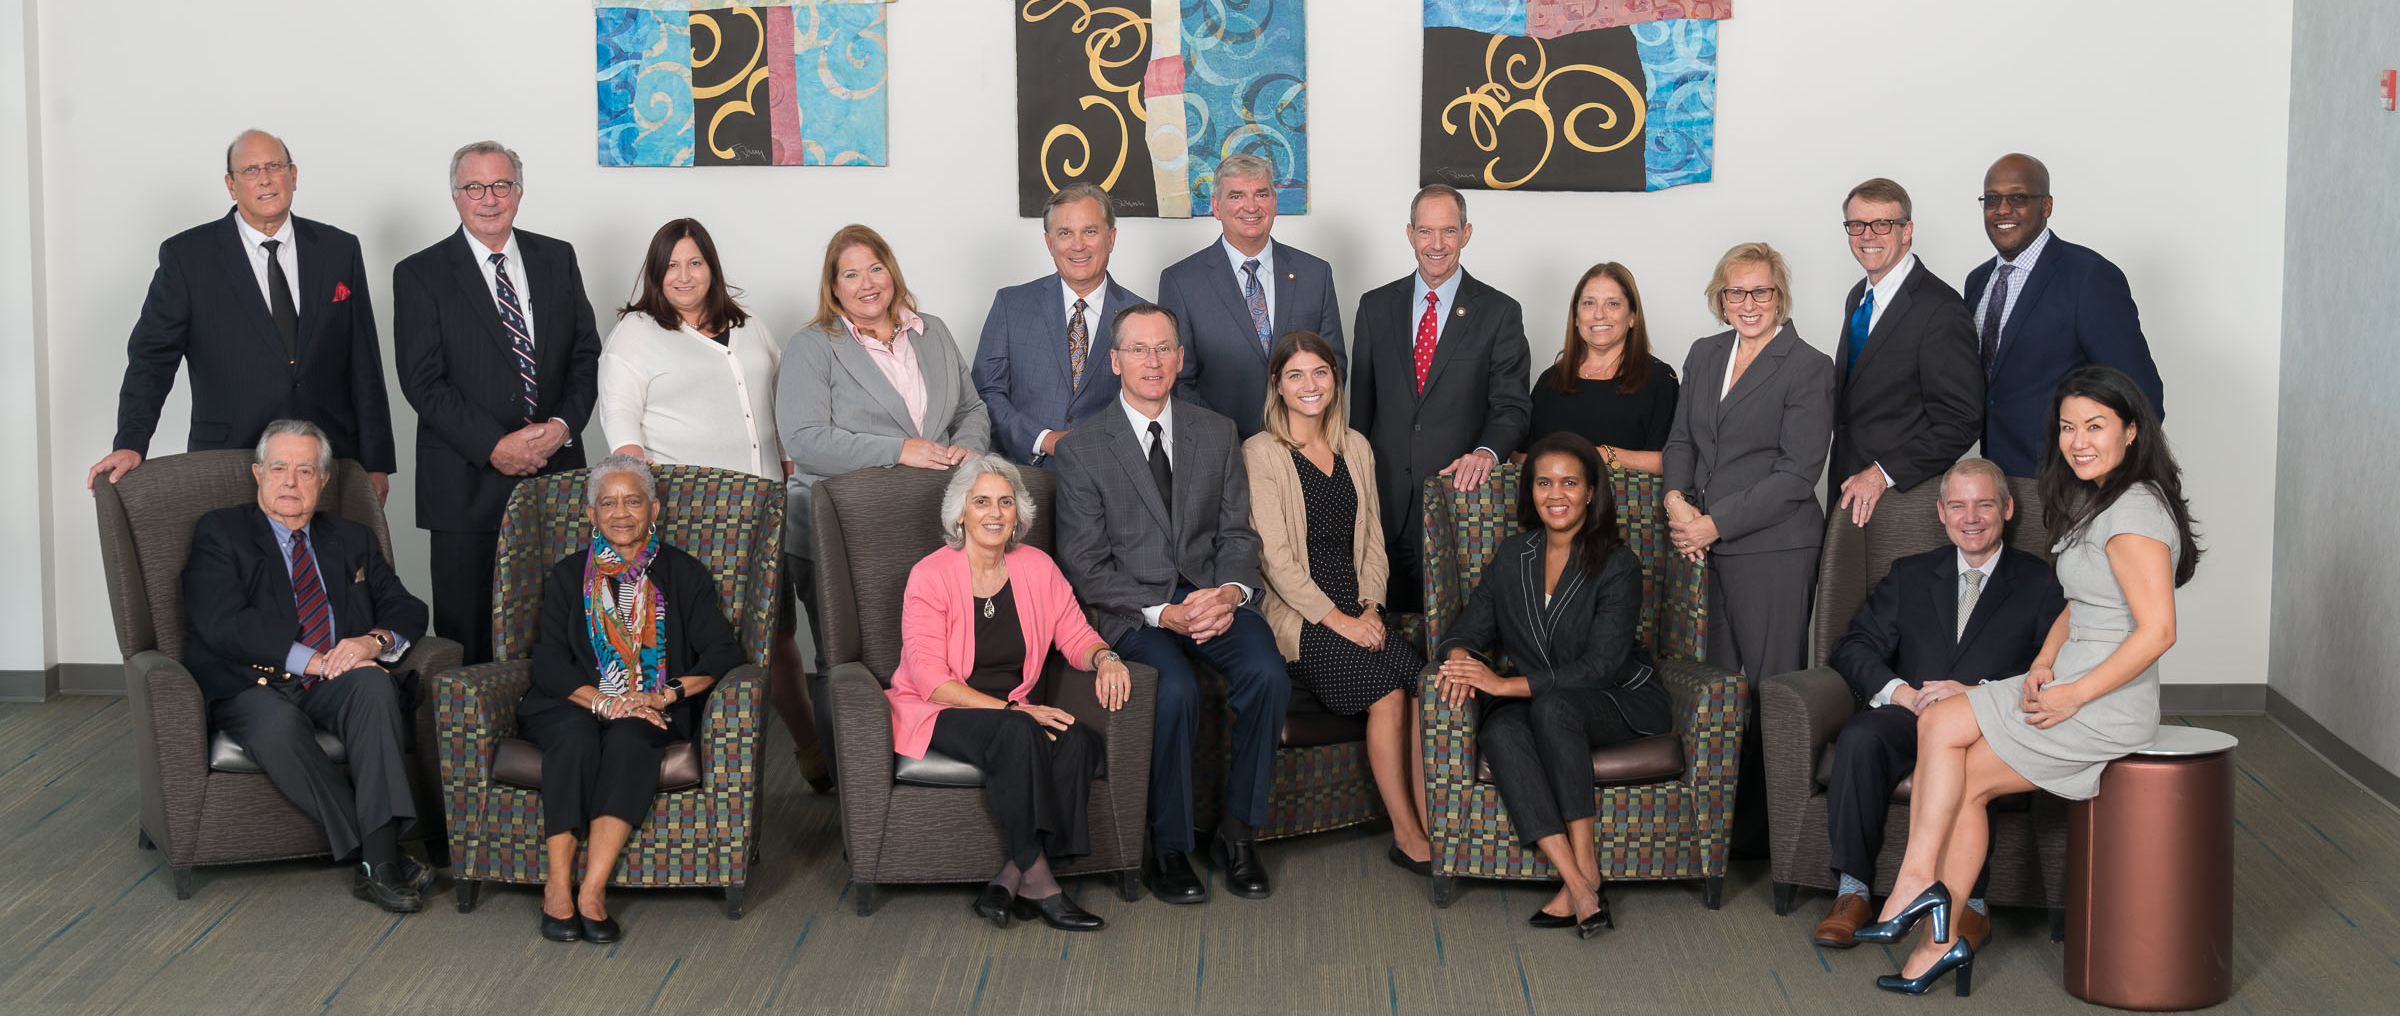 Salus University Board of Trustees